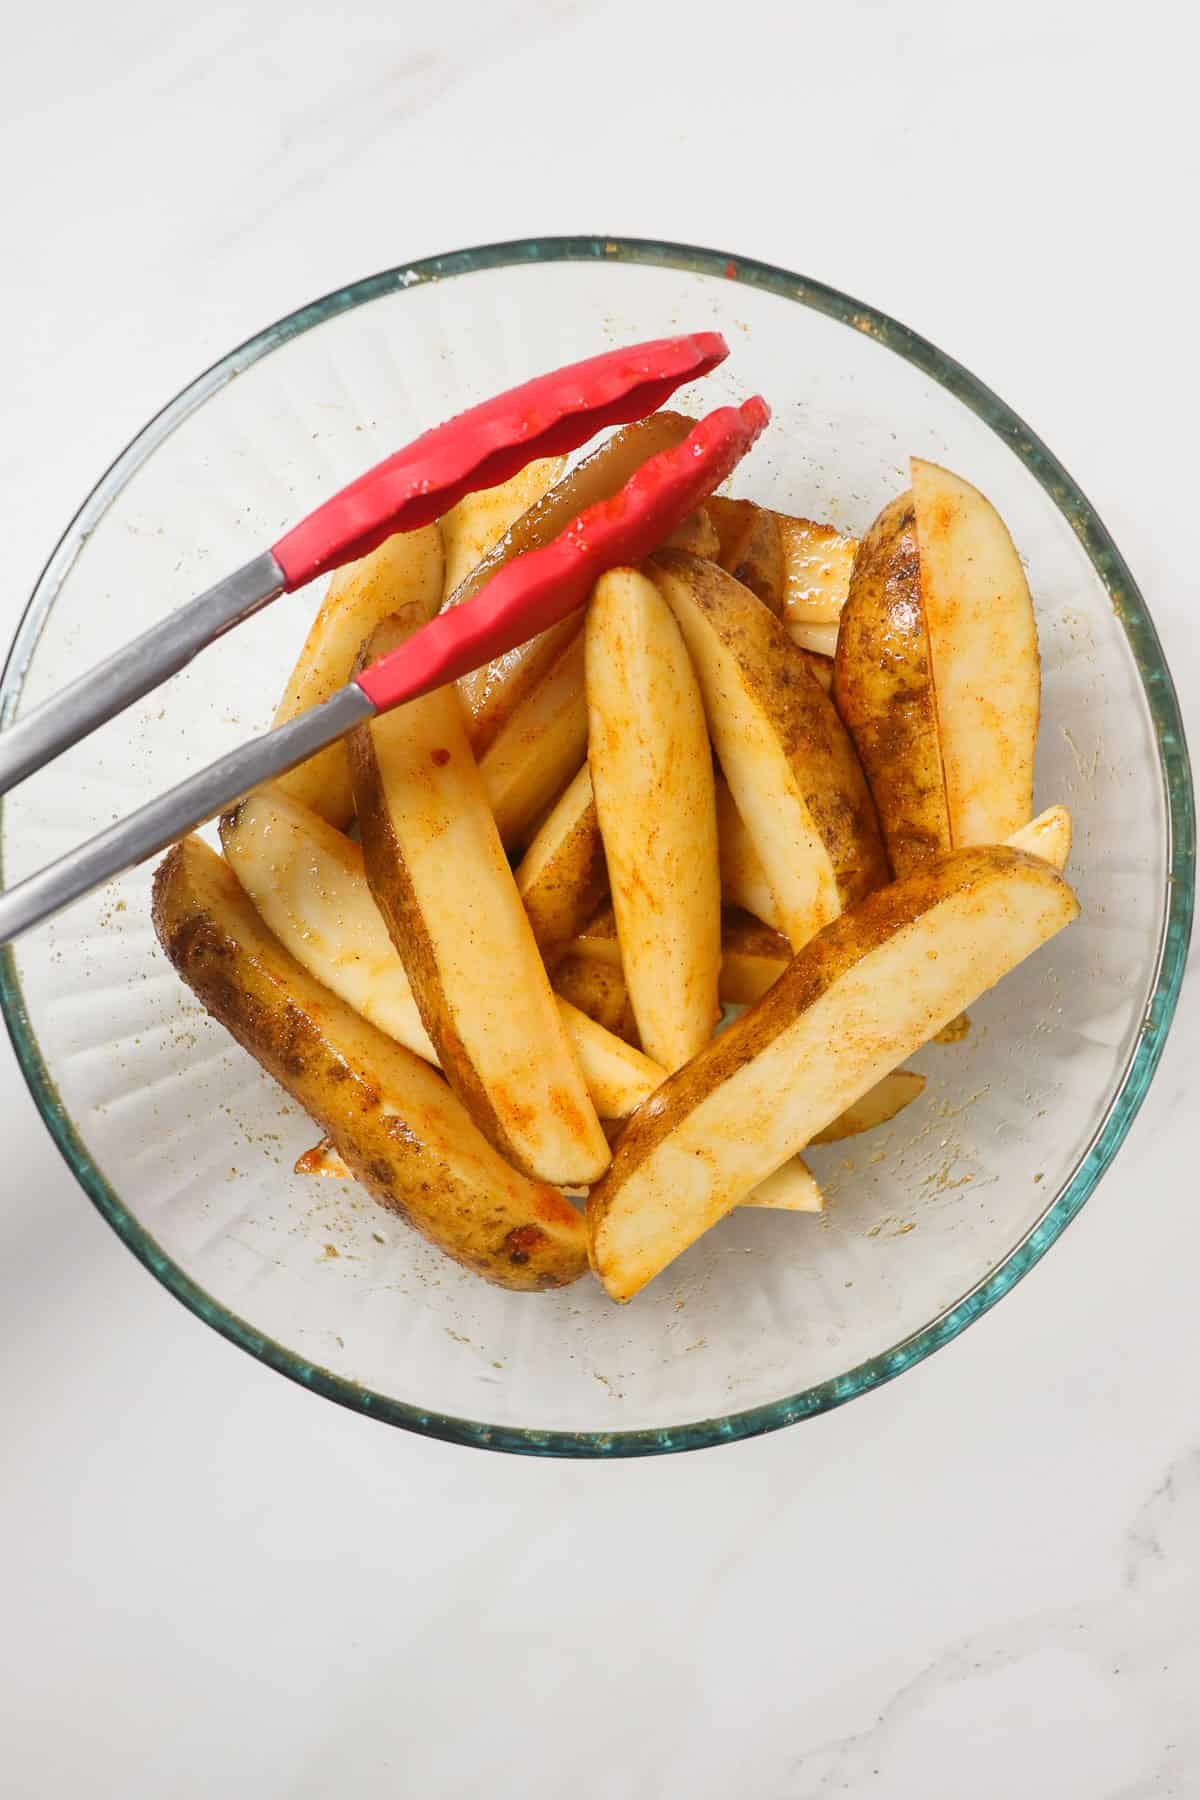 tossing potato wedges in oil and seasoning in a large glass bowl